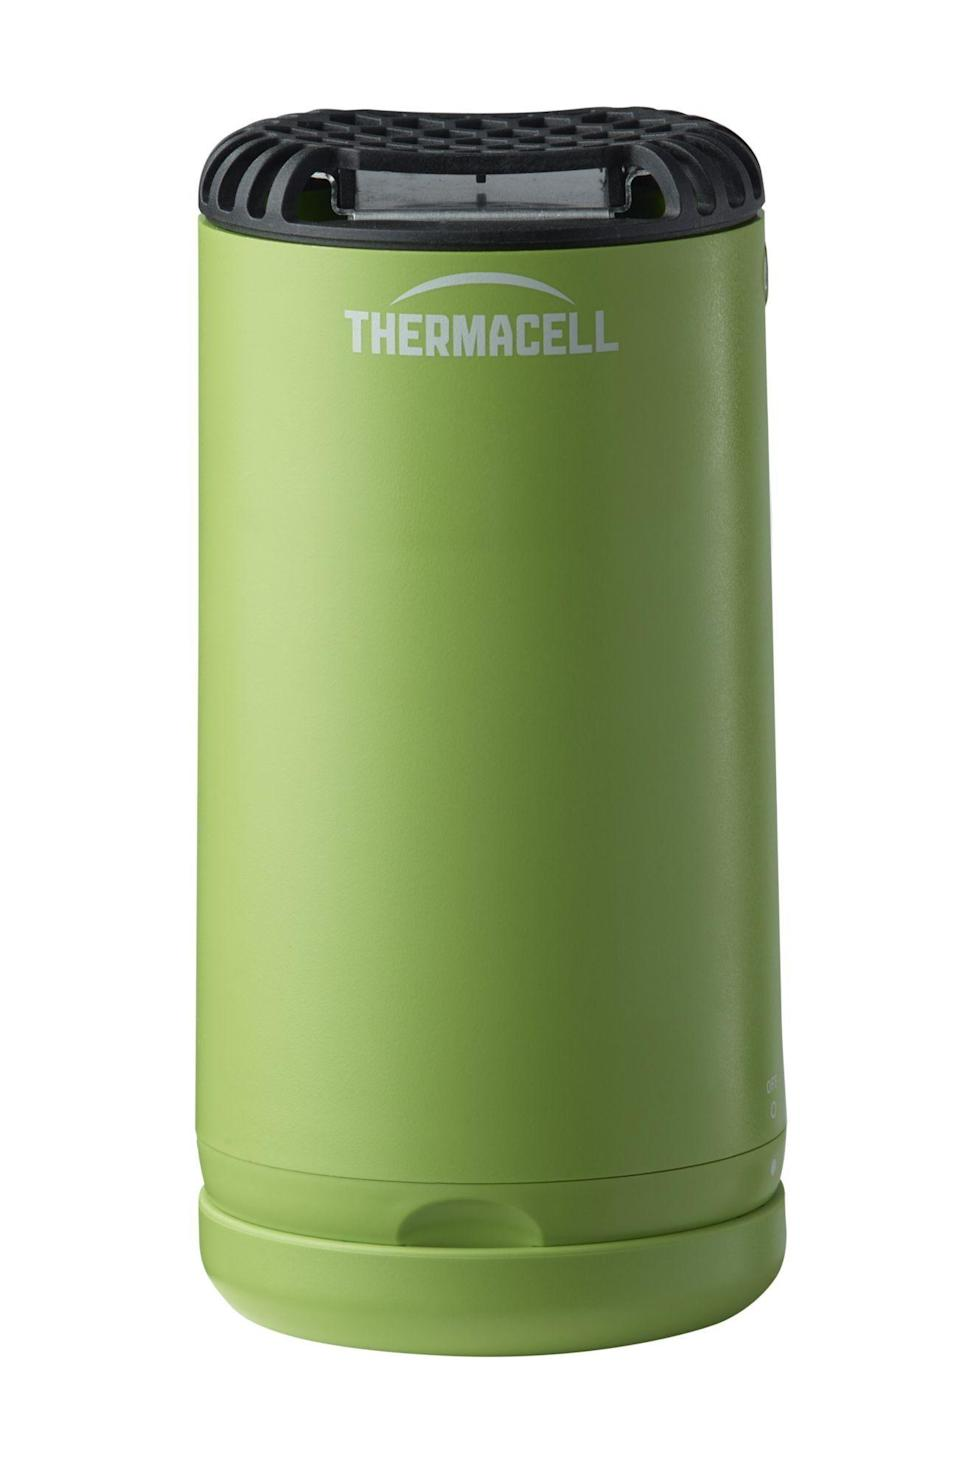 "<p><strong>ThermaCELL</strong></p><p>dickssportinggoods.com</p><p><strong>$24.99</strong></p><p><a href=""https://go.redirectingat.com?id=74968X1596630&url=https%3A%2F%2Fwww.dickssportinggoods.com%2Fp%2Fthermacell-patio-shield-mosquito-repeller-19thcuthrmcllptshodr%2F19thcuthrmcllptshodr&sref=https%3A%2F%2Fwww.countryliving.com%2Fshopping%2Fg27409029%2Fbest-bug-zapper%2F"" rel=""nofollow noopener"" target=""_blank"" data-ylk=""slk:Shop Now"" class=""link rapid-noclick-resp"">Shop Now</a></p><p>This repellent free solution creates a 15 foot zone of protection. You and your family will love this scent free way of dealing with those pesky mosquitos. One reviewer says ""We just set up the Patio Shield on our patio table near the pool, take a dip in the pool and when we get out don't have to worry about being bugged by those nasty flying blood suckers.""</p>"